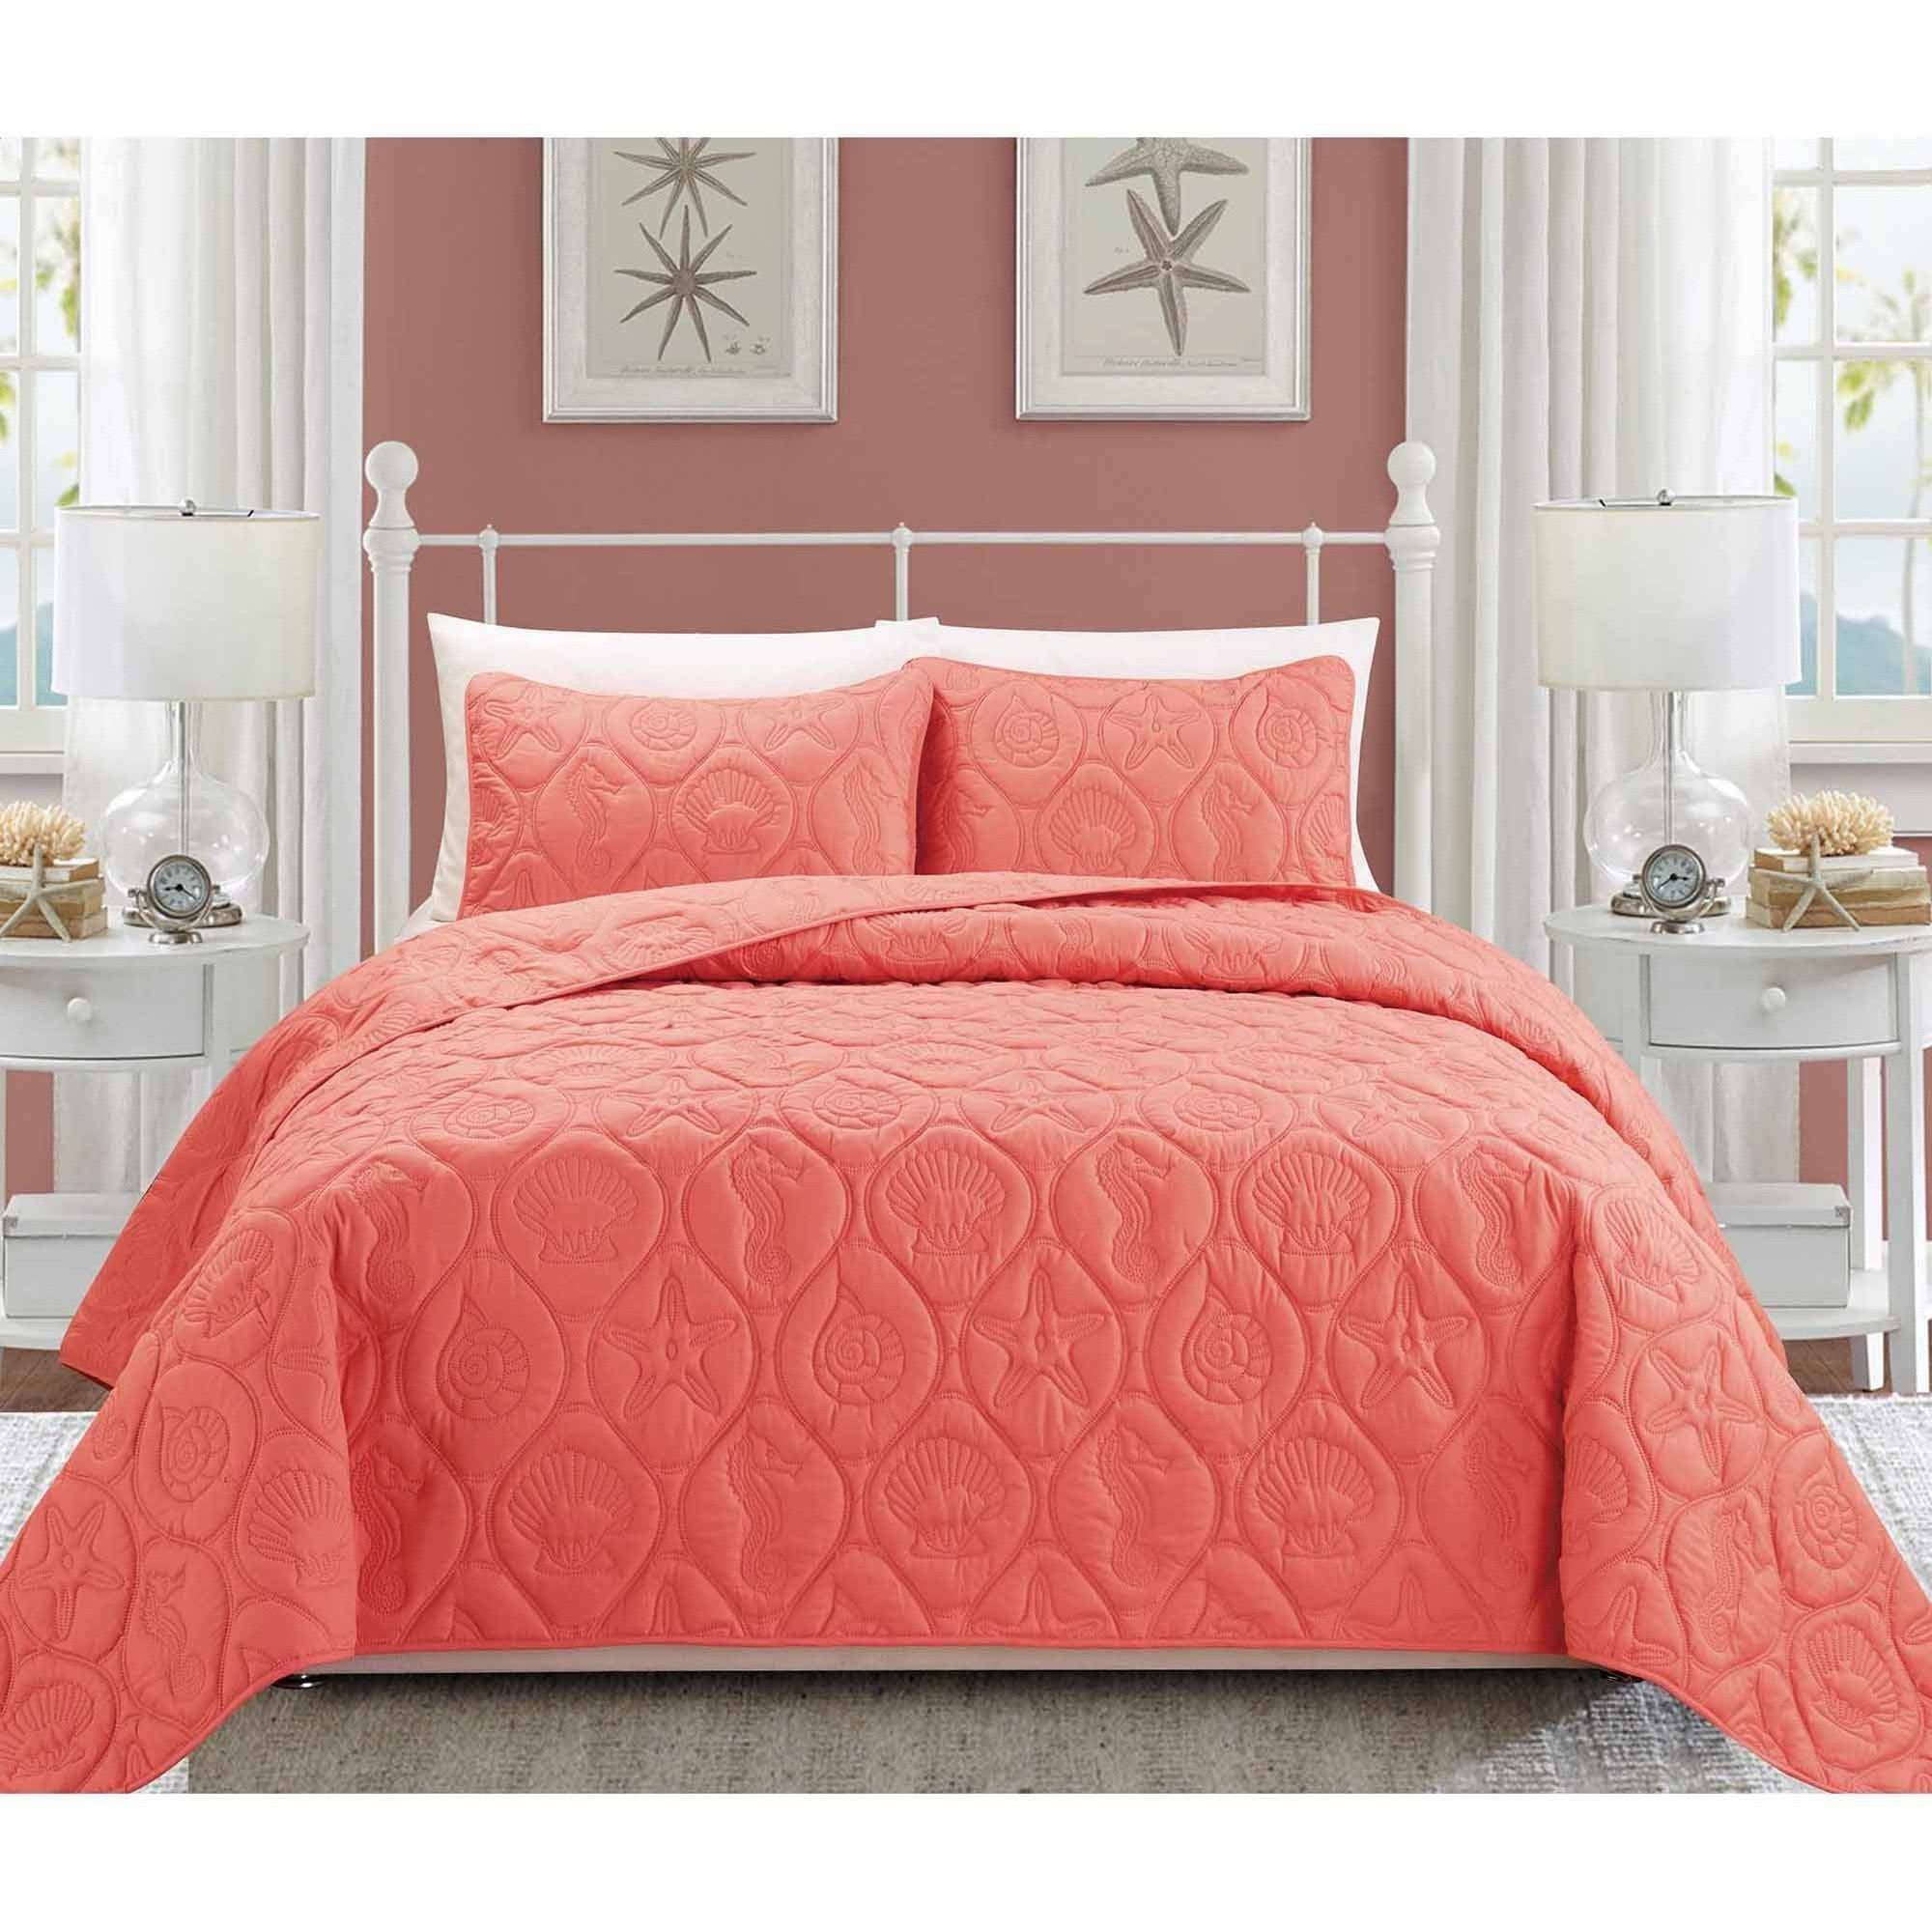 Better Homes and Gardens Coral and Shells Bedding Quilt Set ... : coral quilt - Adamdwight.com